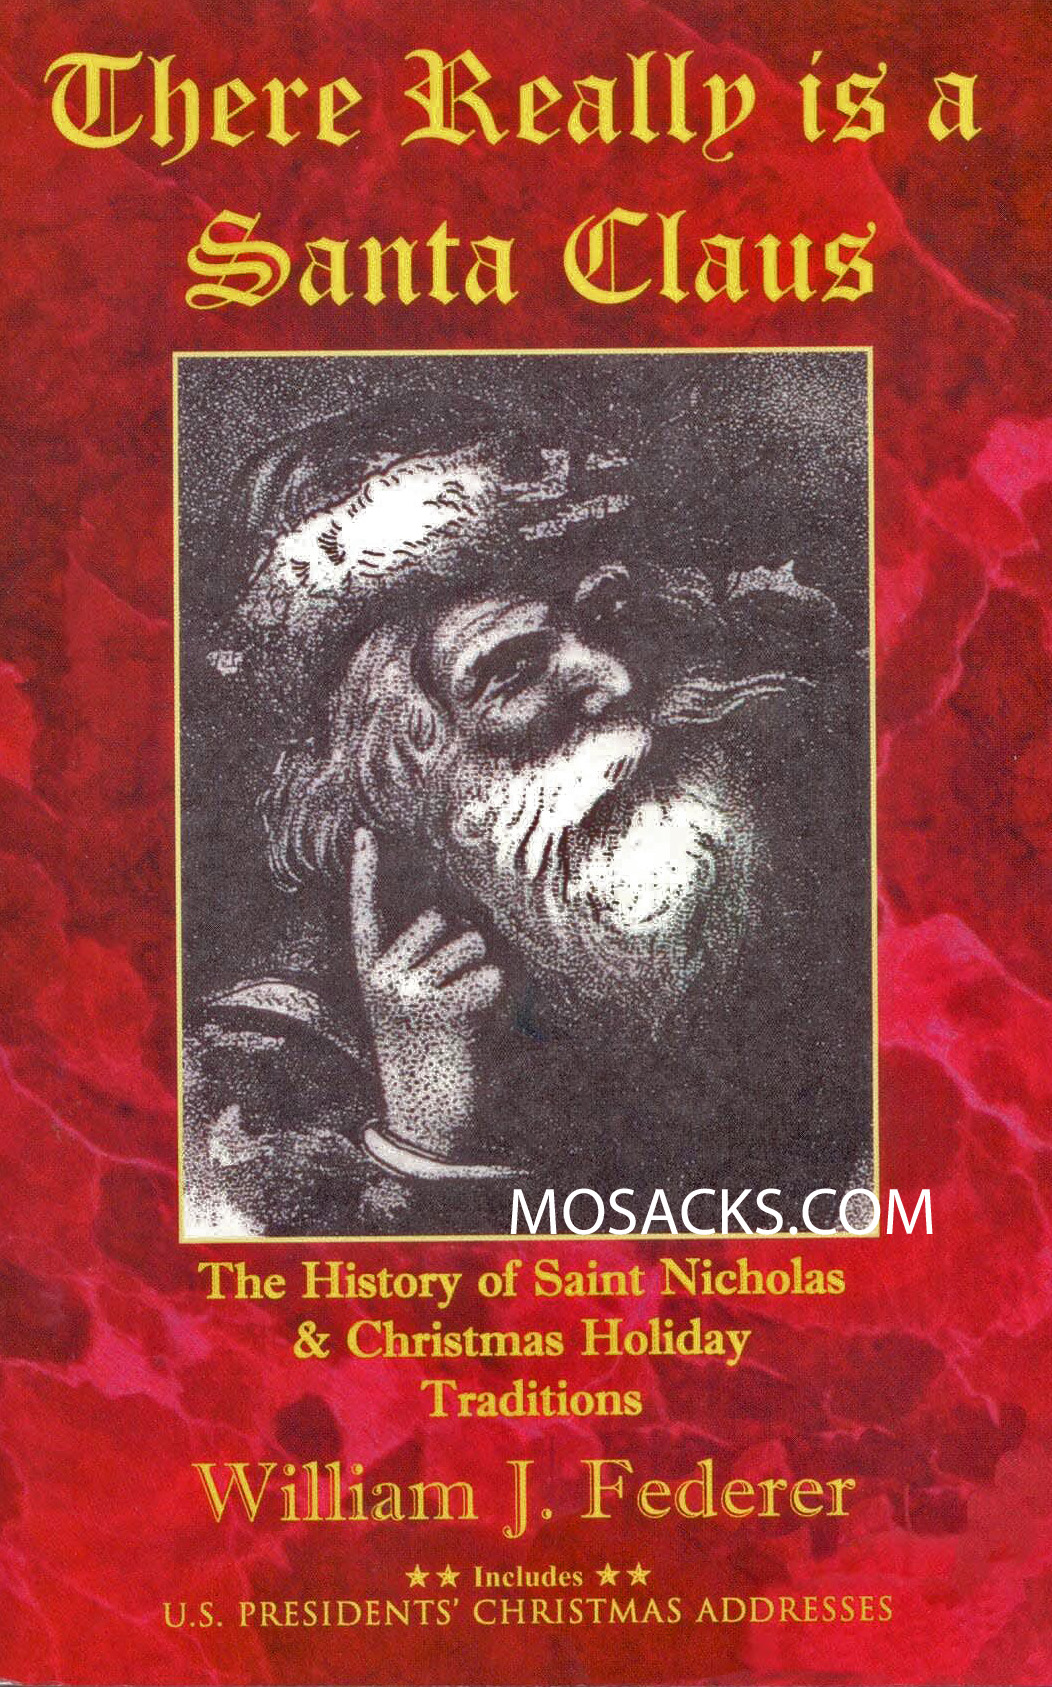 There Really Is a Santa Claus: The History of Saint Nicholas & Christmas Holiday Traditions by William J. Federer ISBN 9780965355742